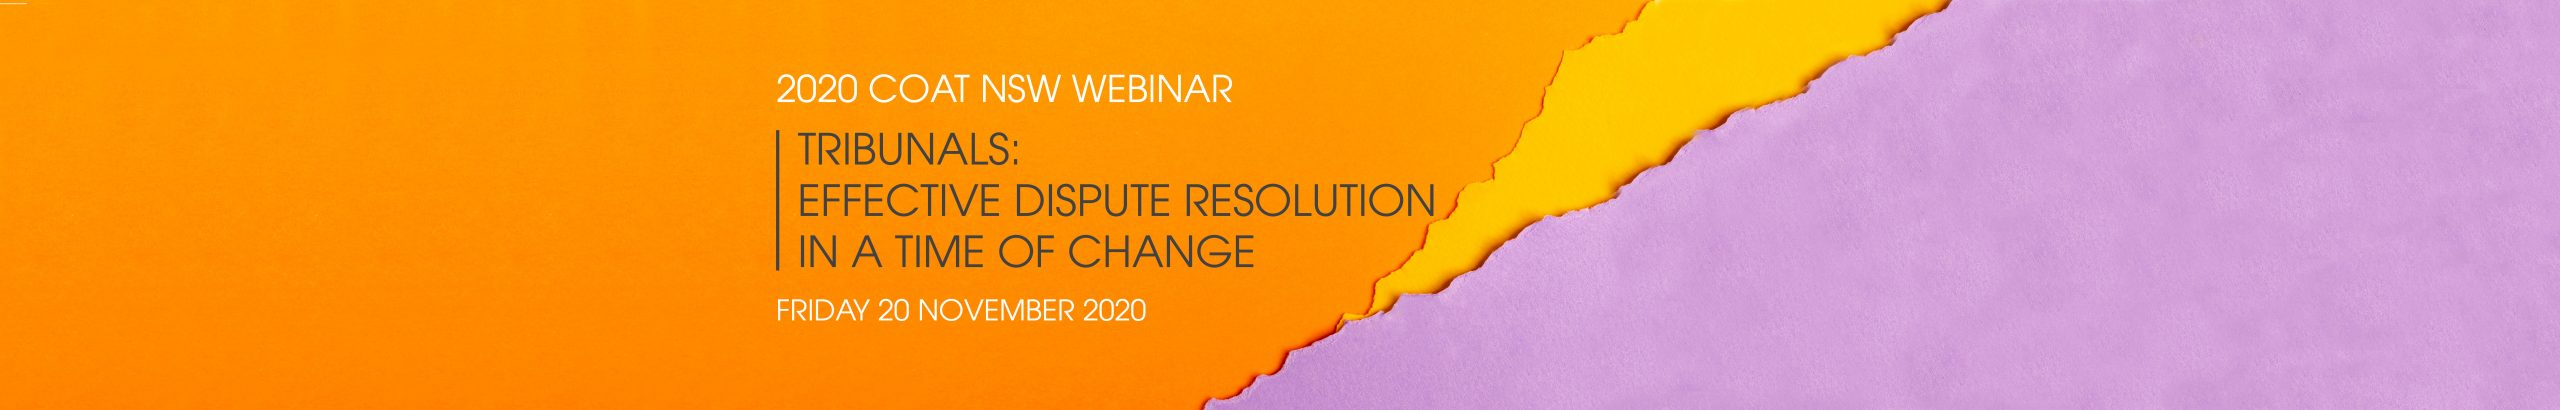 2020 COAT NSW Webinar – Tribunals: effective dispute resolution in a time of change